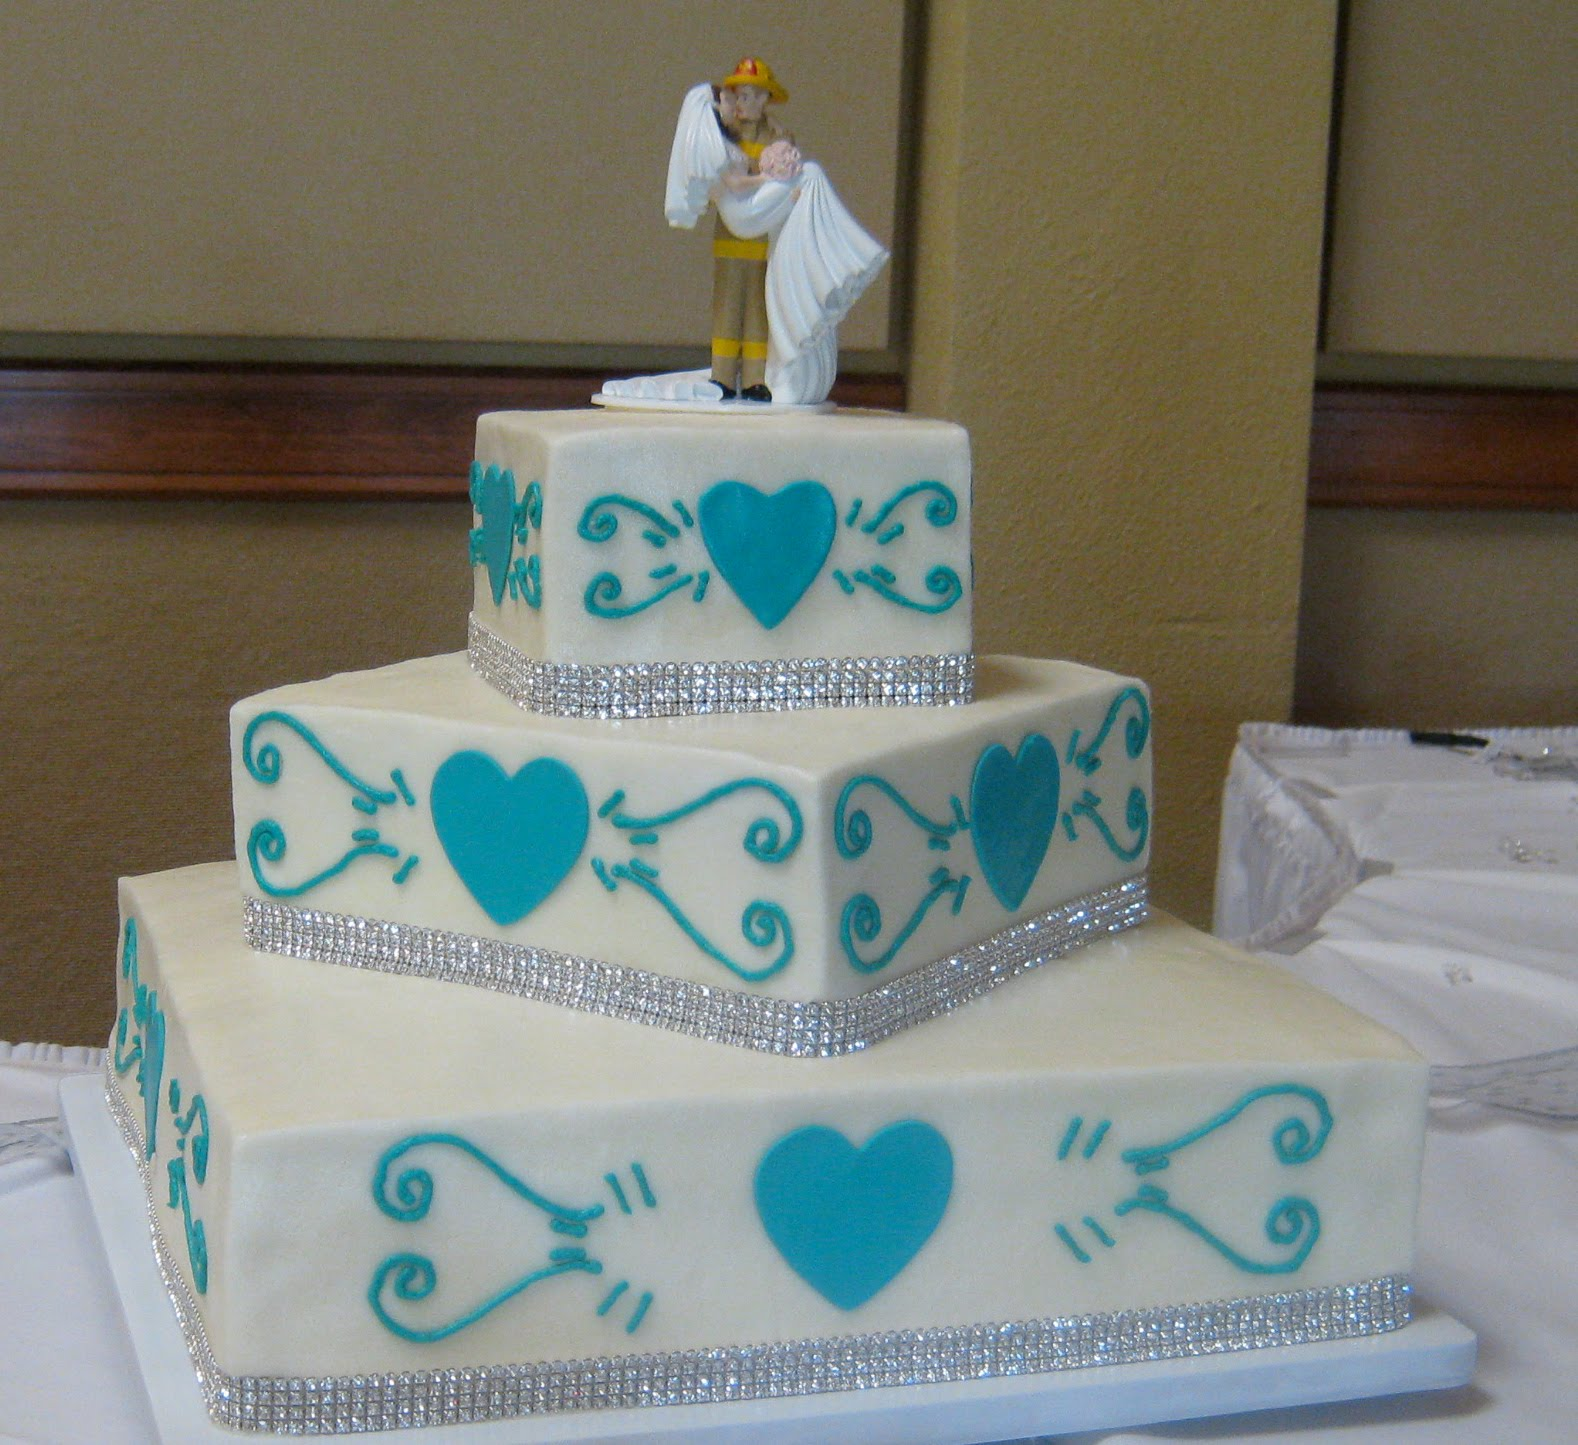 Sweet T s Cake Design Teal Hearts & Sparkling Bling